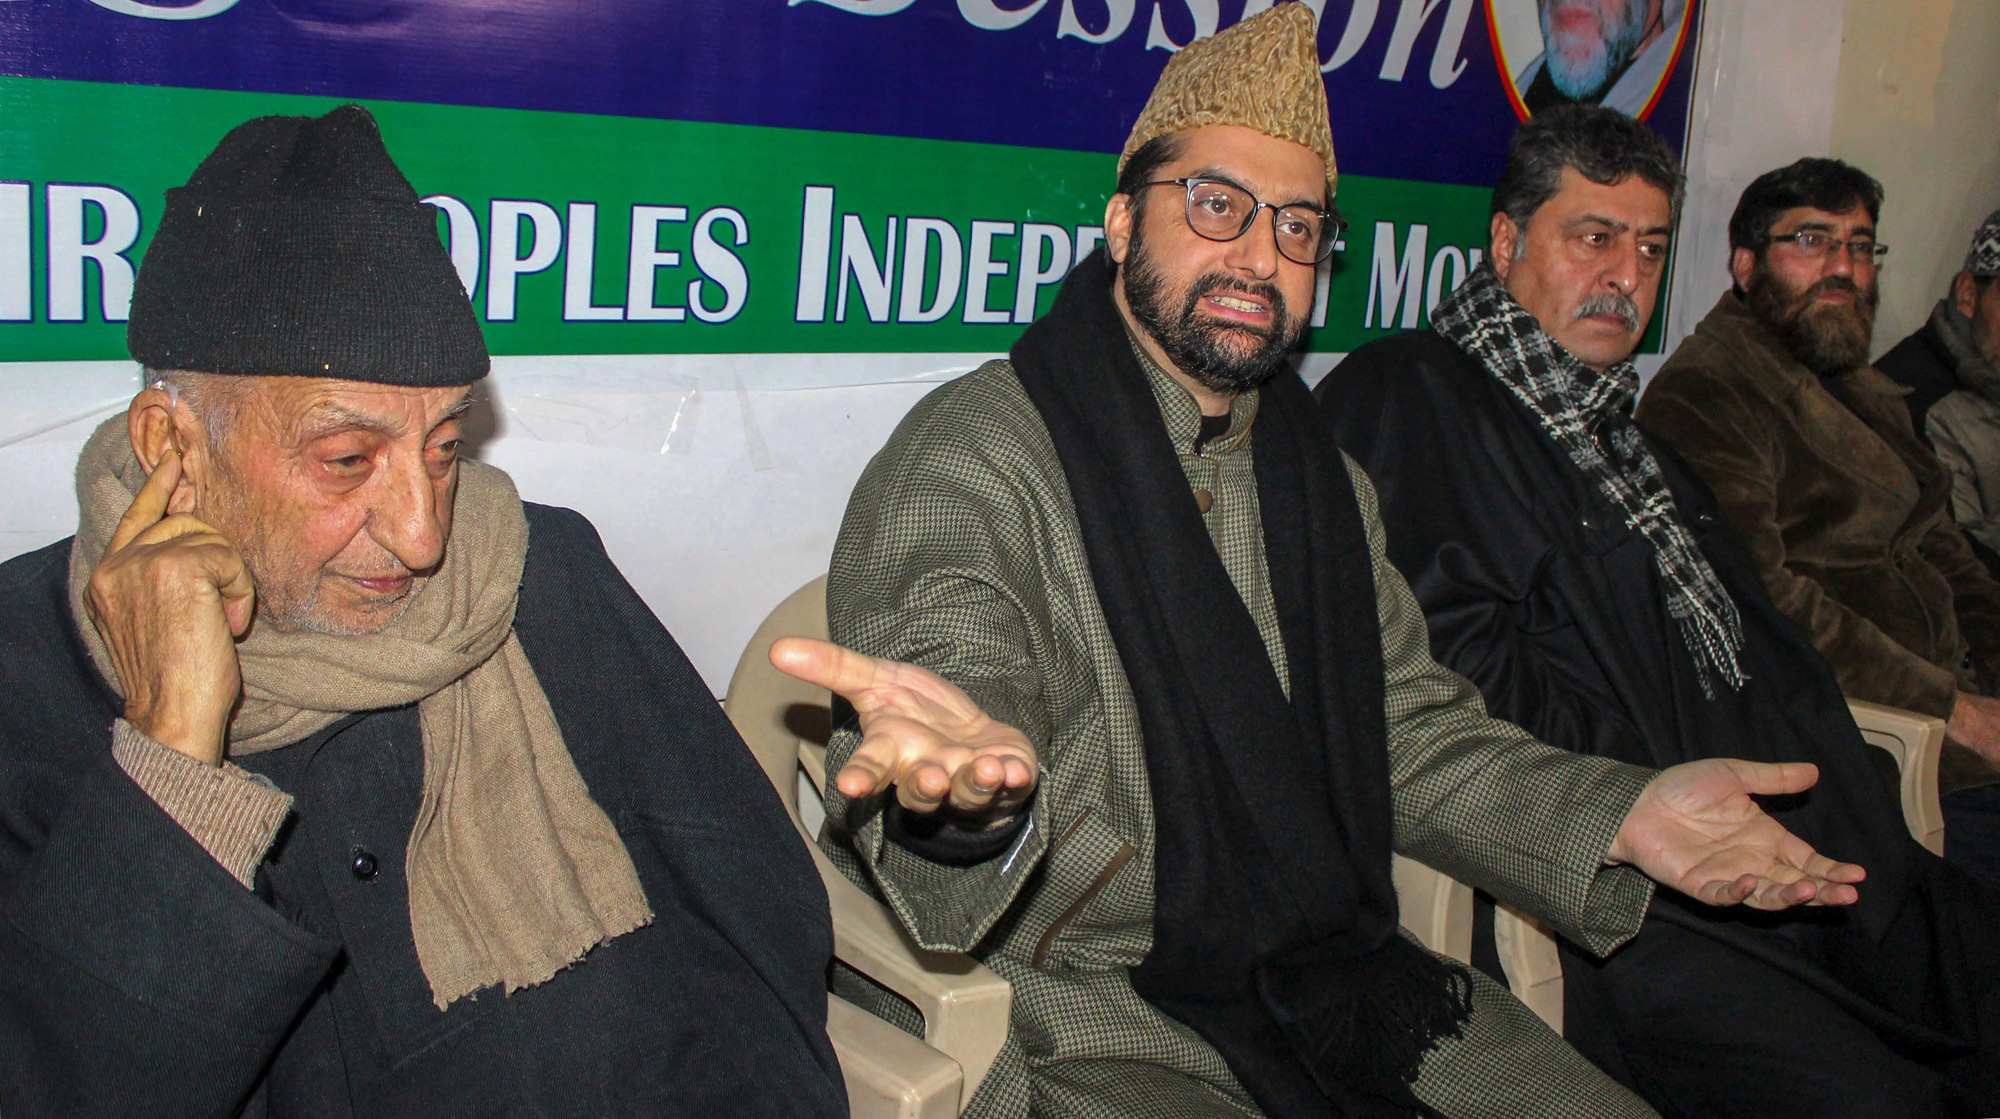 Moderate Hurriyat Chairman Mirwaiz Umar Farooq (second from left) and party executive leaders Abdul Gani Bhat and Bilal Lone during a press conference, in Srinagar on Wednesday, January 30, 2019.